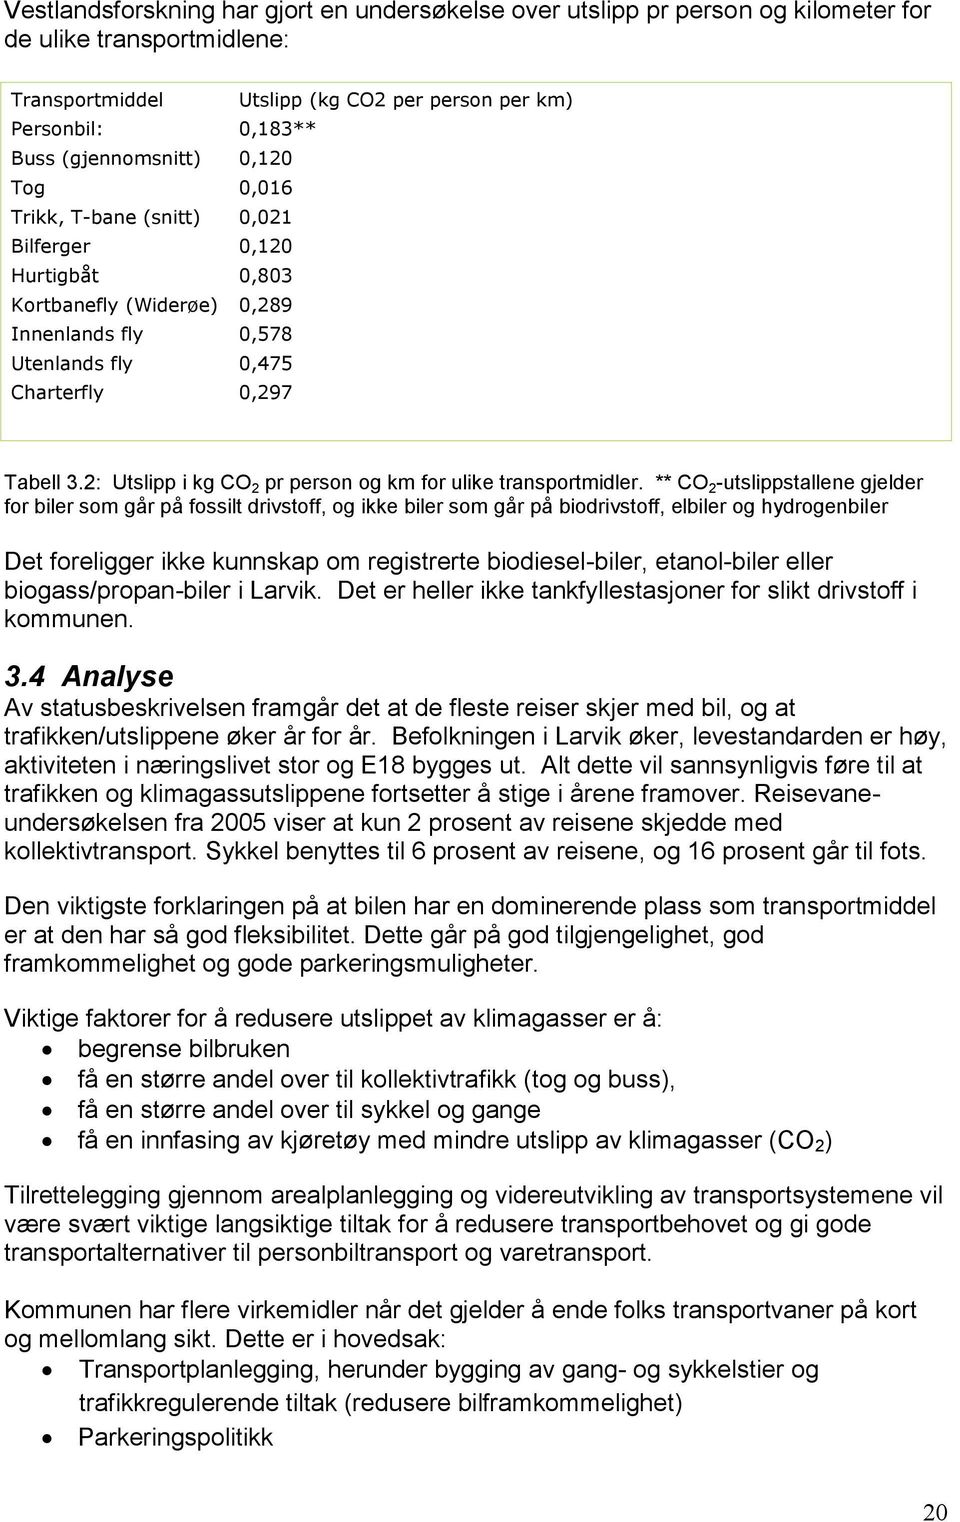 2: Utslipp i kg CO 2 pr person og km for ulike transportmidler.